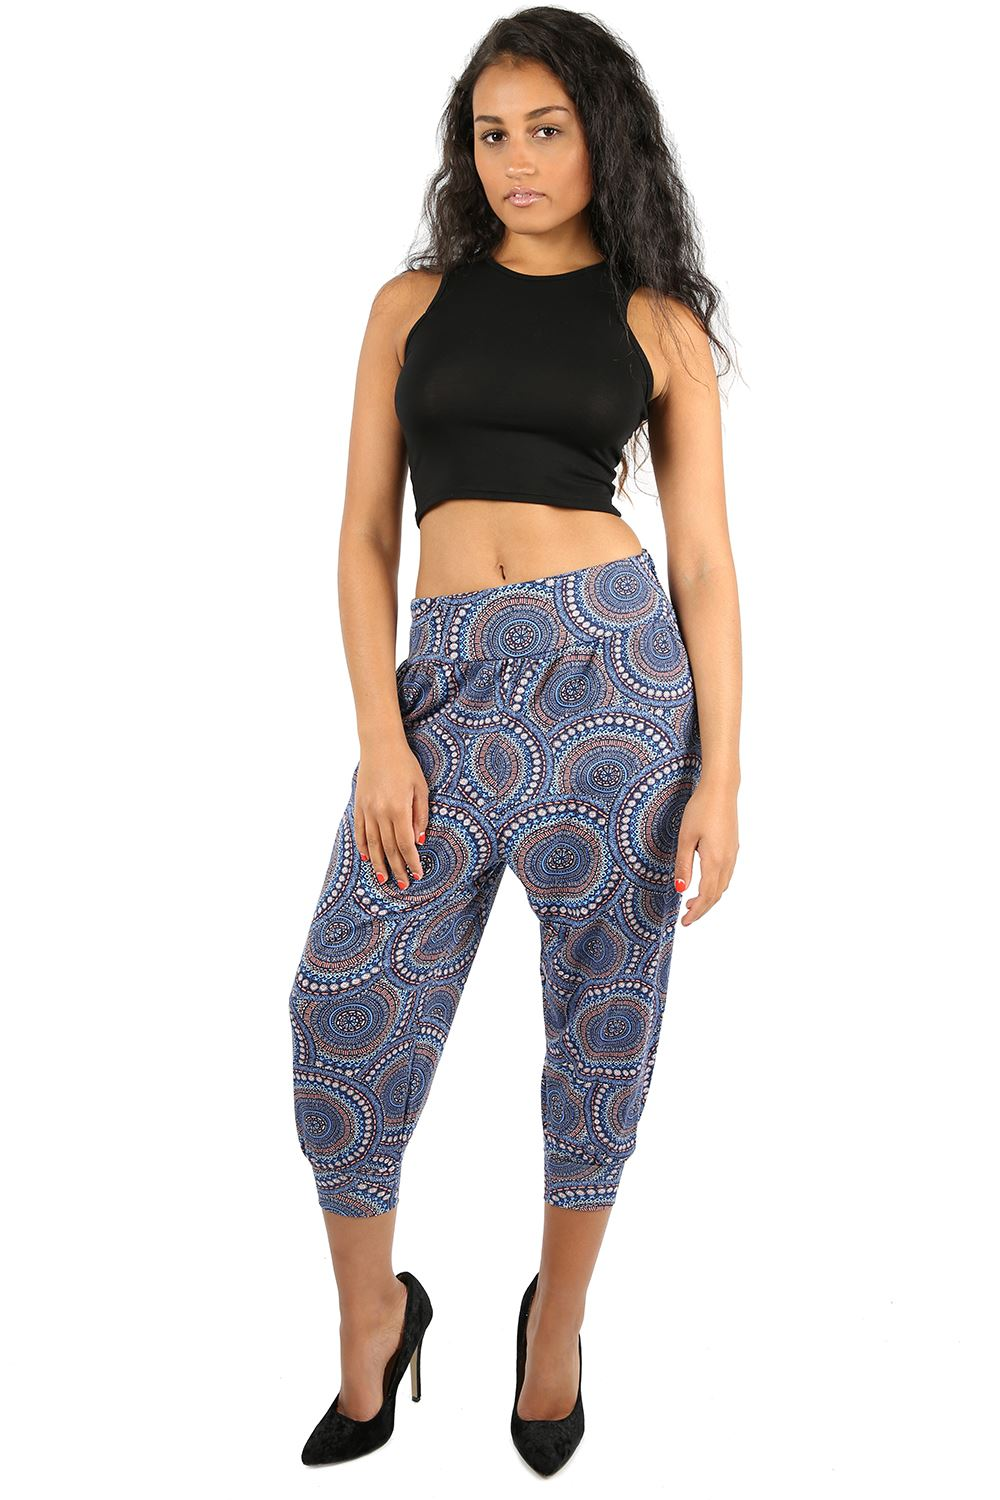 Free shipping on cropped & capri pants for women a loadingbassqz.cf Shop by rise, material, size and more from the best brands. Free shipping & returns.